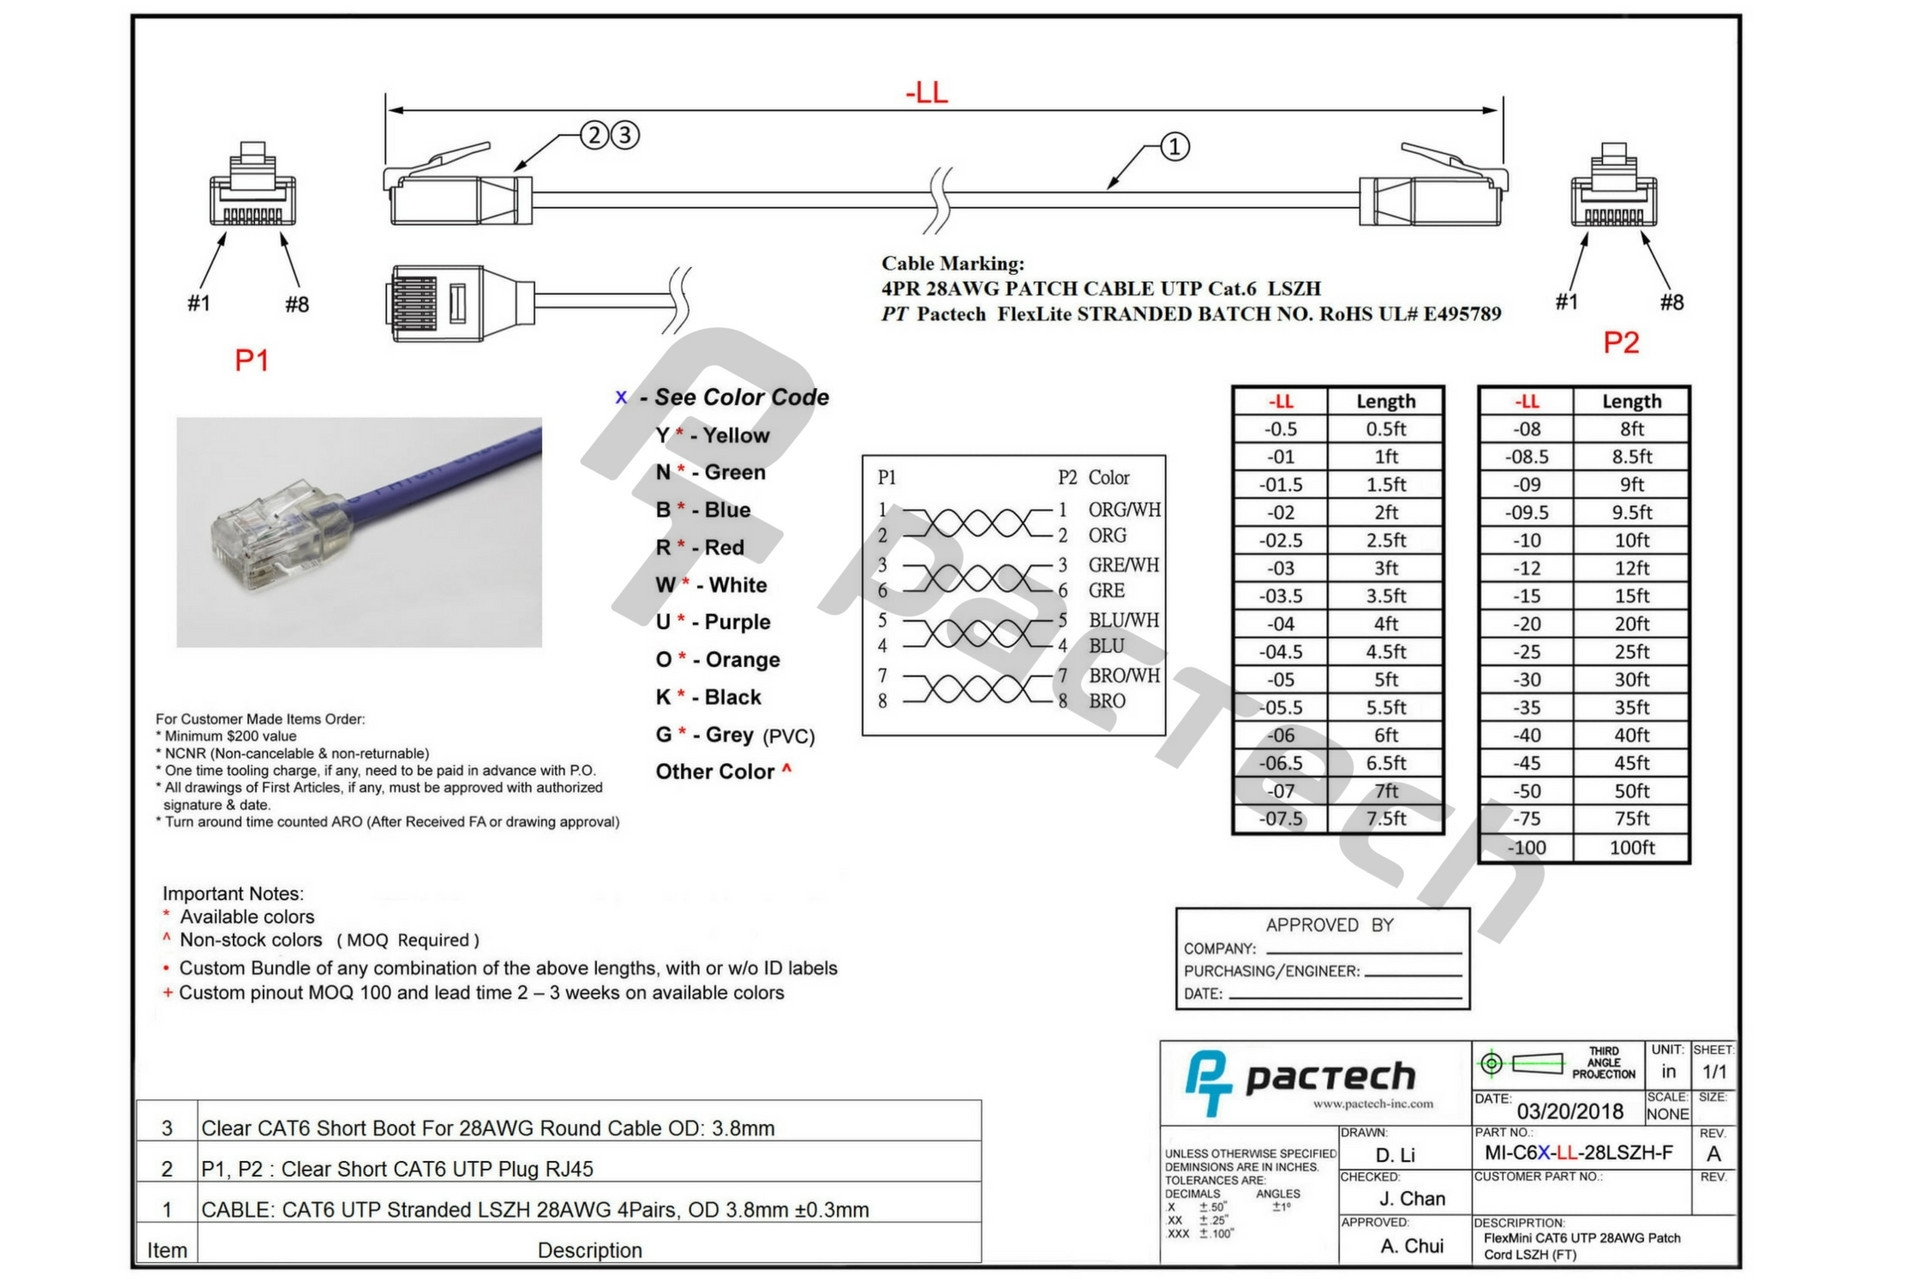 wiring diagrams as well as cat 5 wall jack wiring diagram wiring